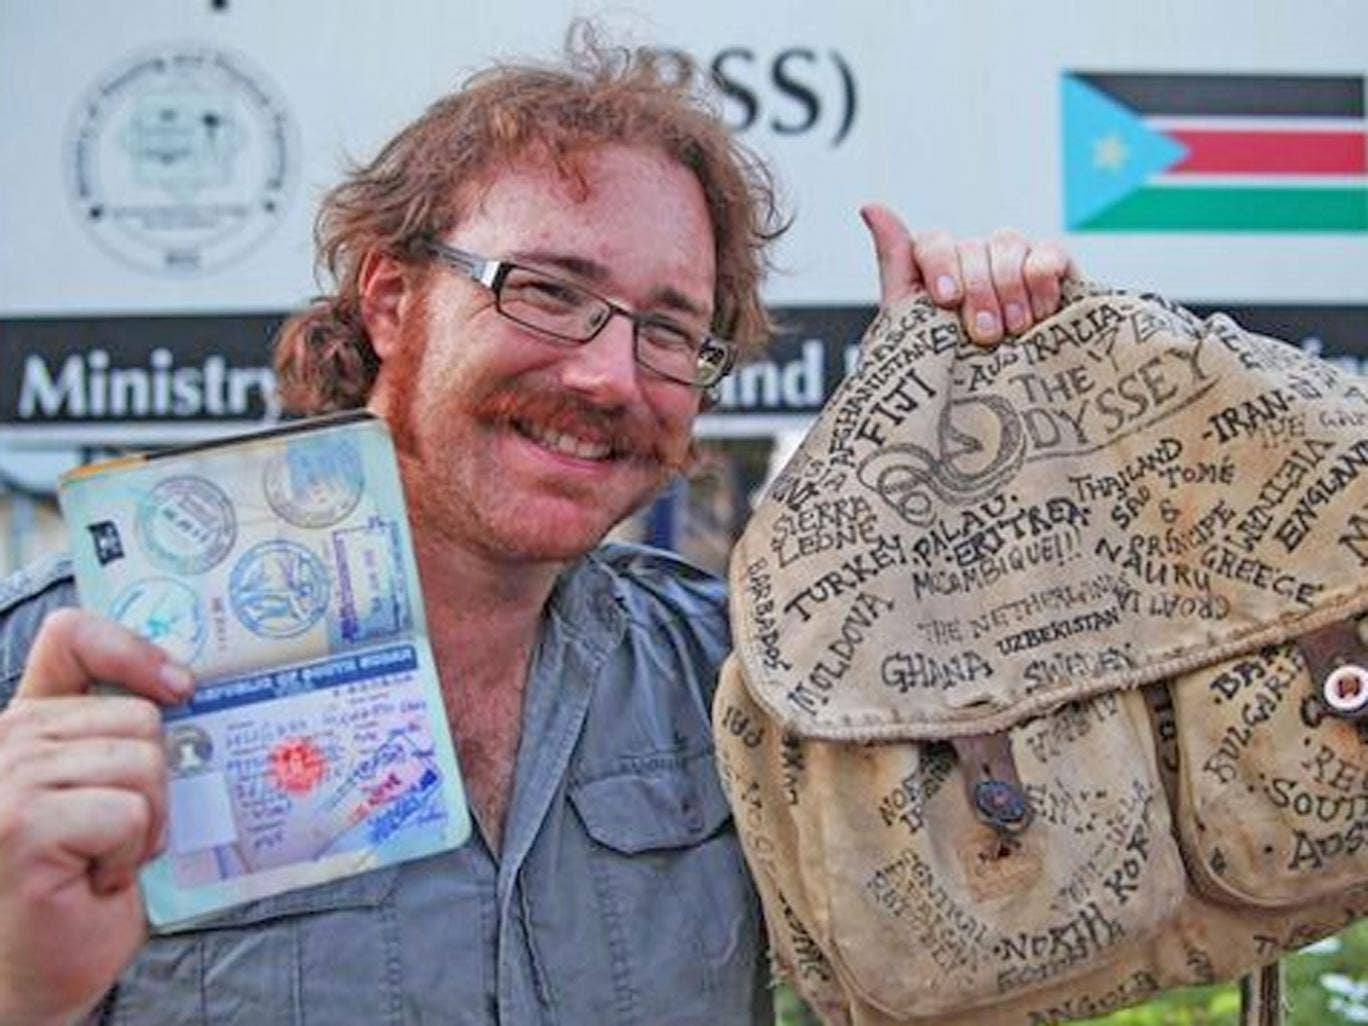 Graham Hughes prepares for the final leg of his record-breaking journey